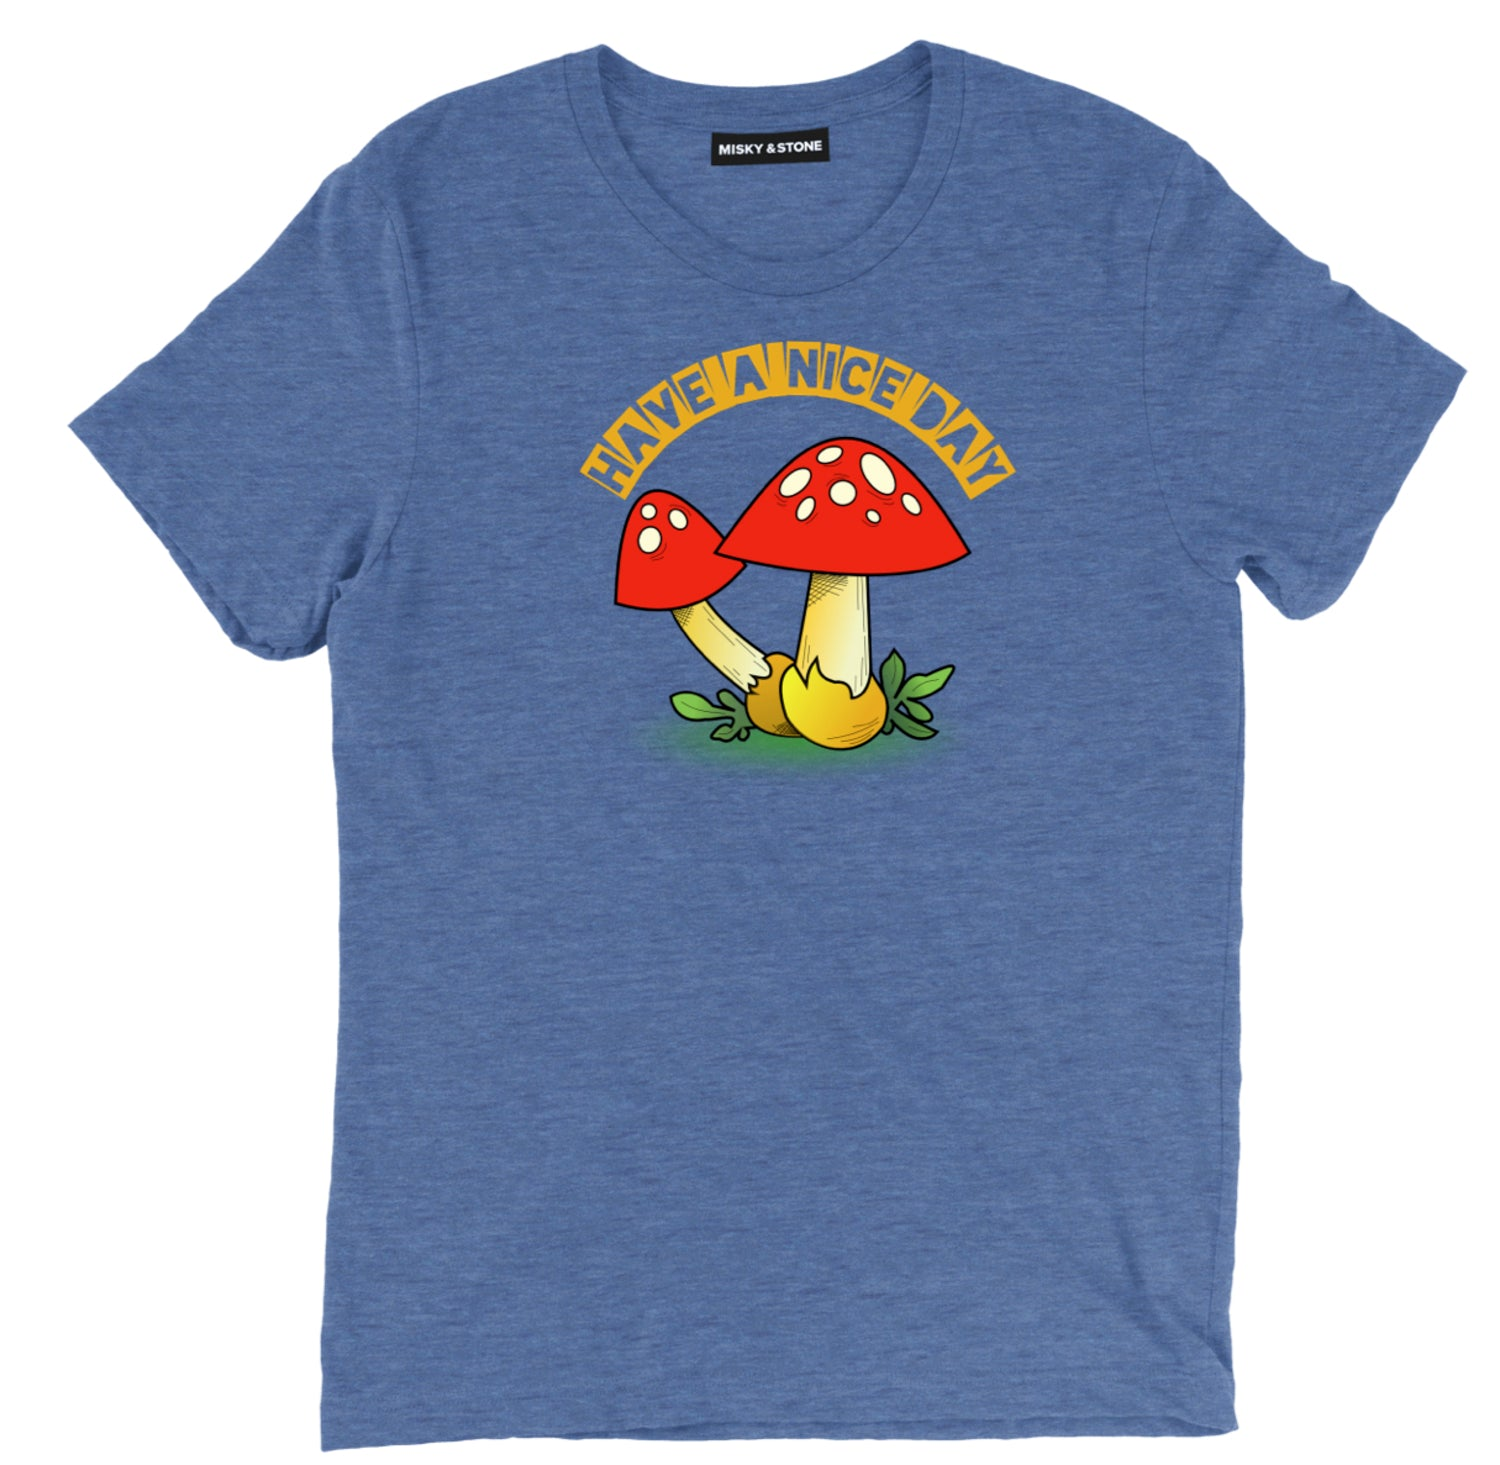 Have A Nice Day Shrooms Unisex Tee Shirt